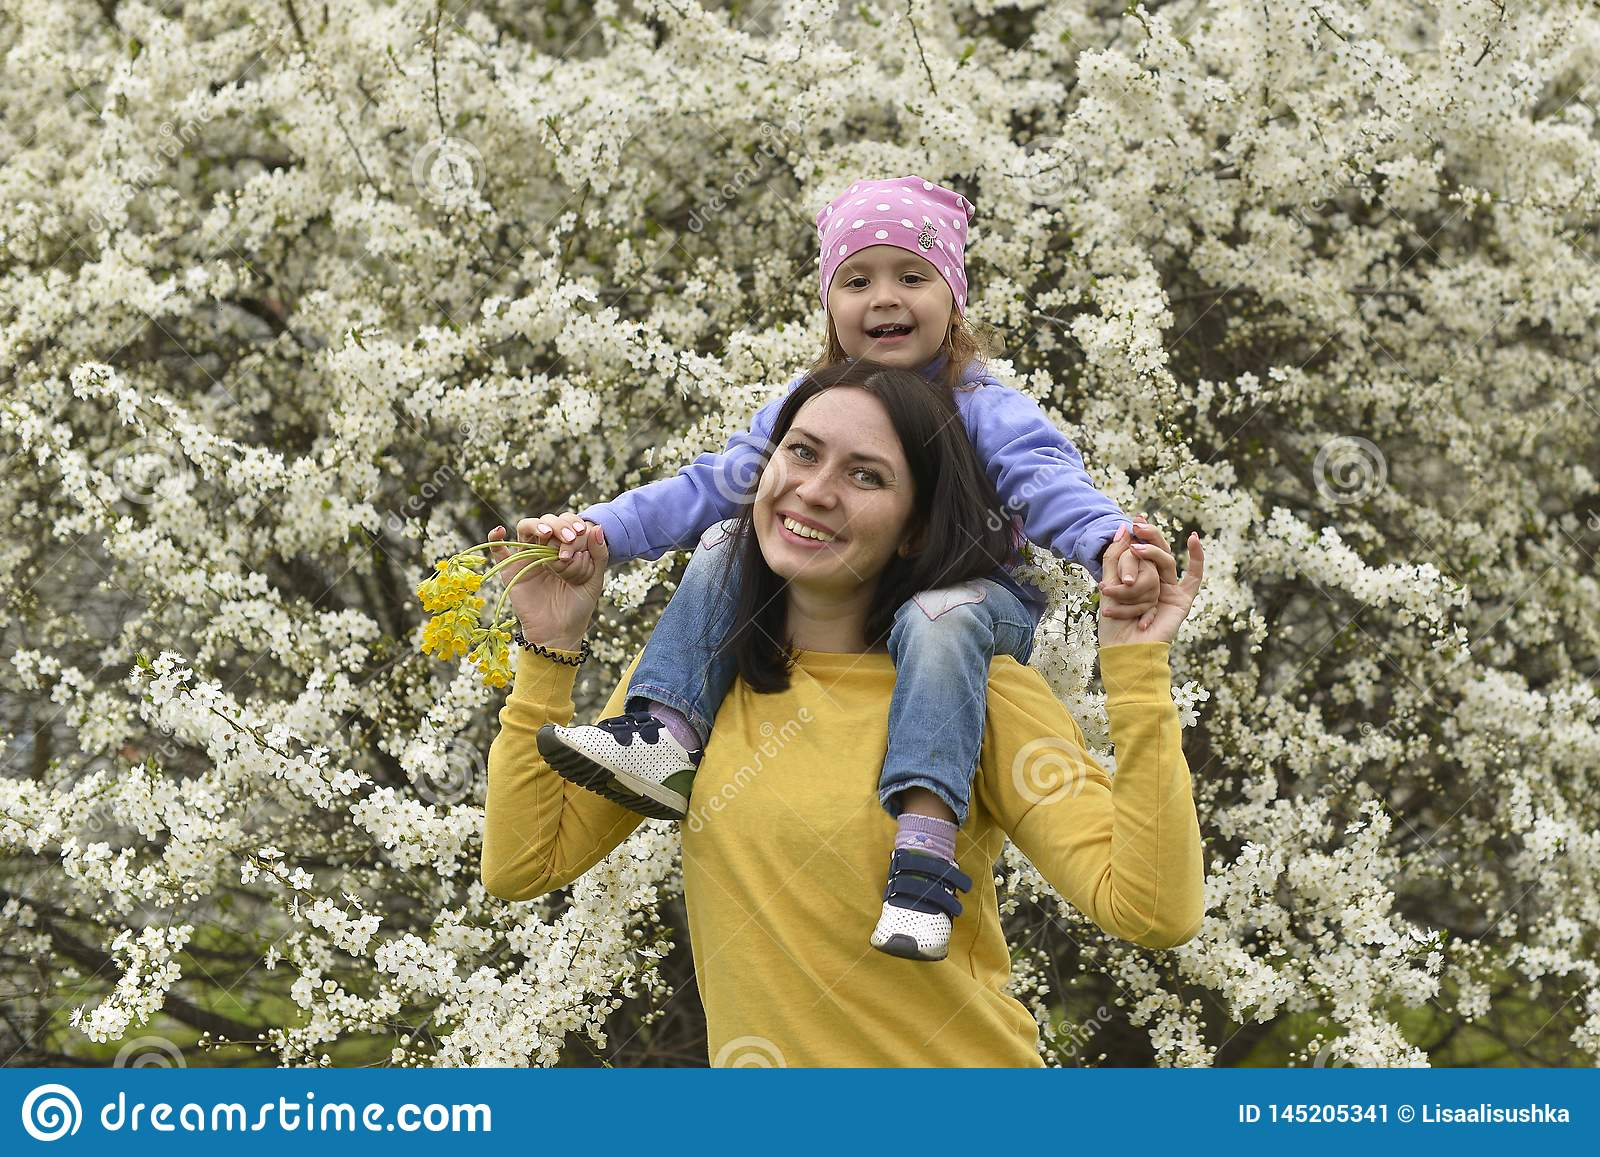 A young mother has put her little daughter on her shoulders and plays with her in the blooming garden